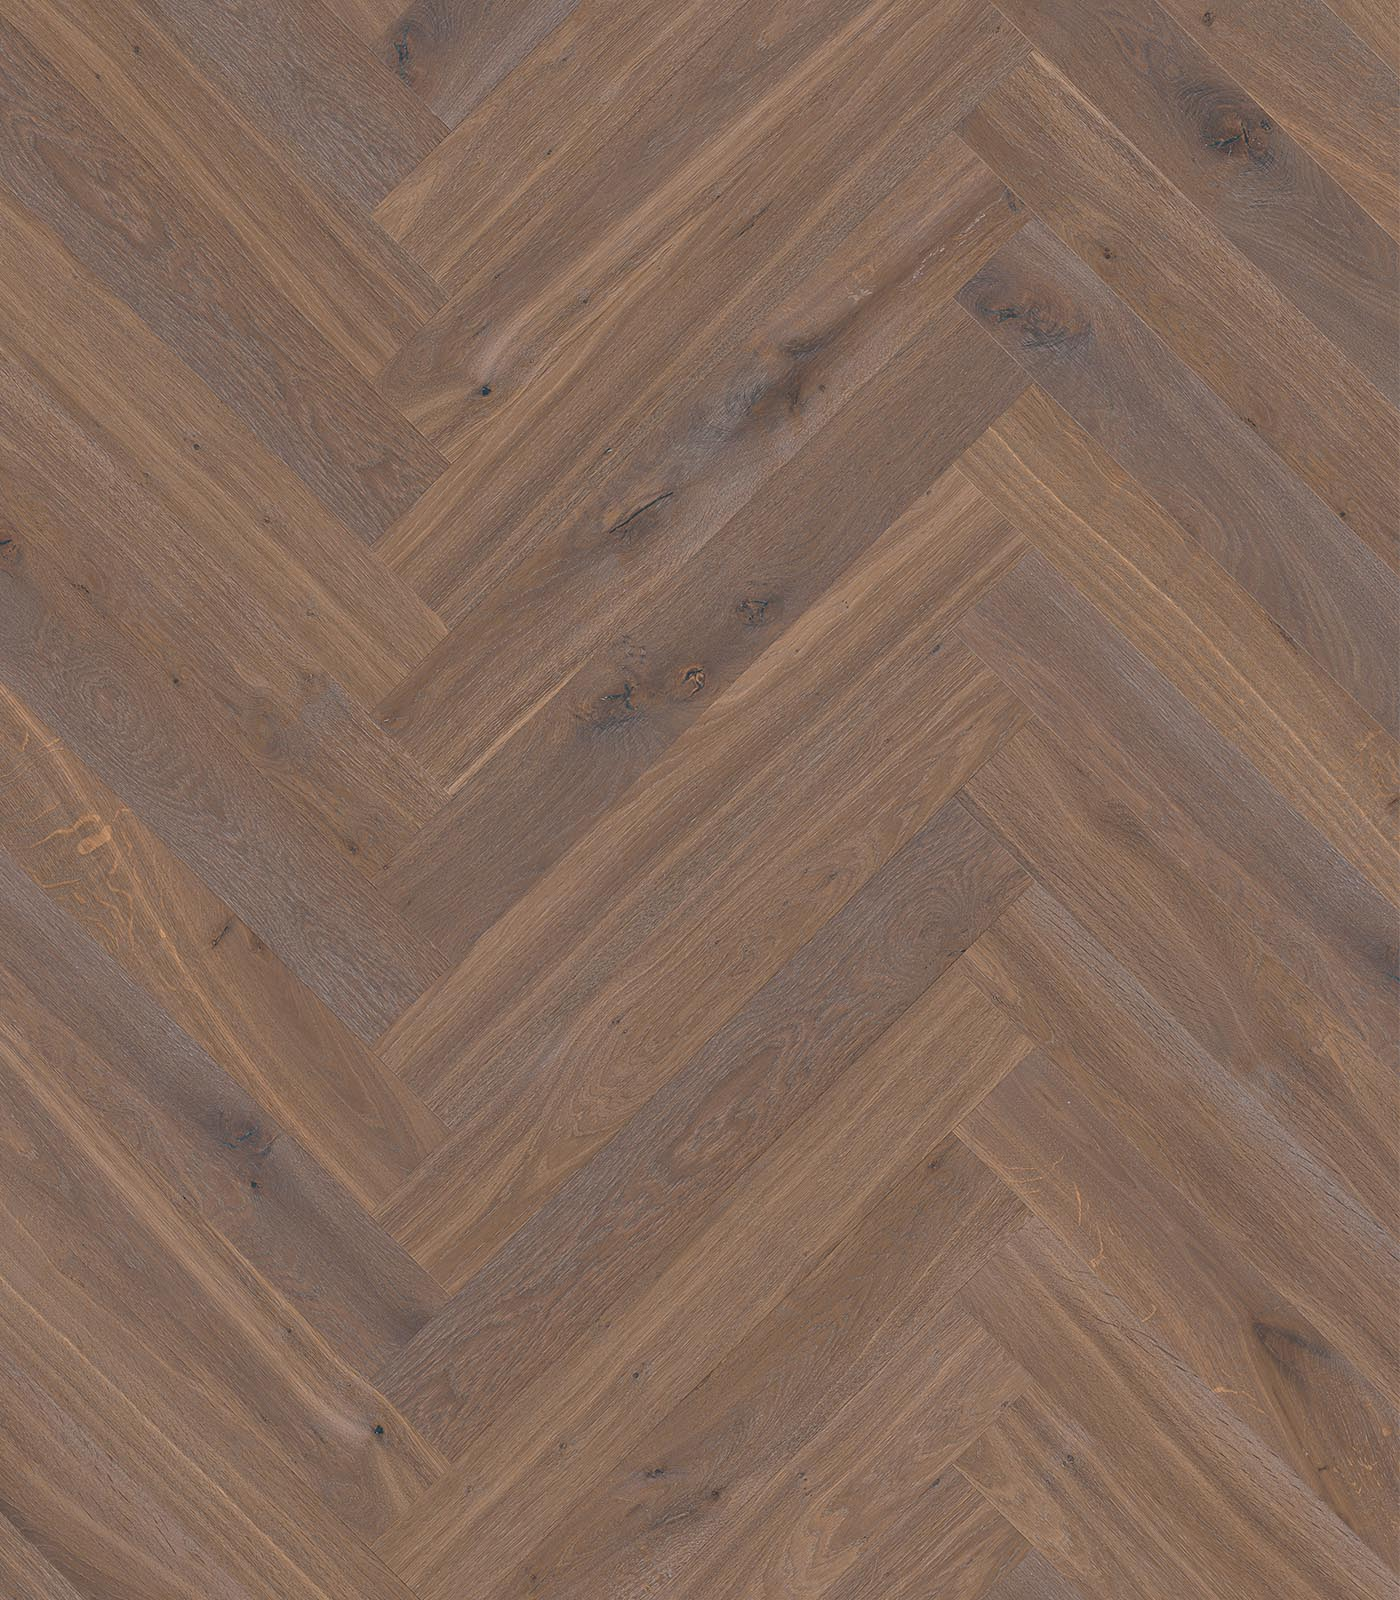 Fashion Collection-Herringbone-Biarritz-Western European oak floors-flat